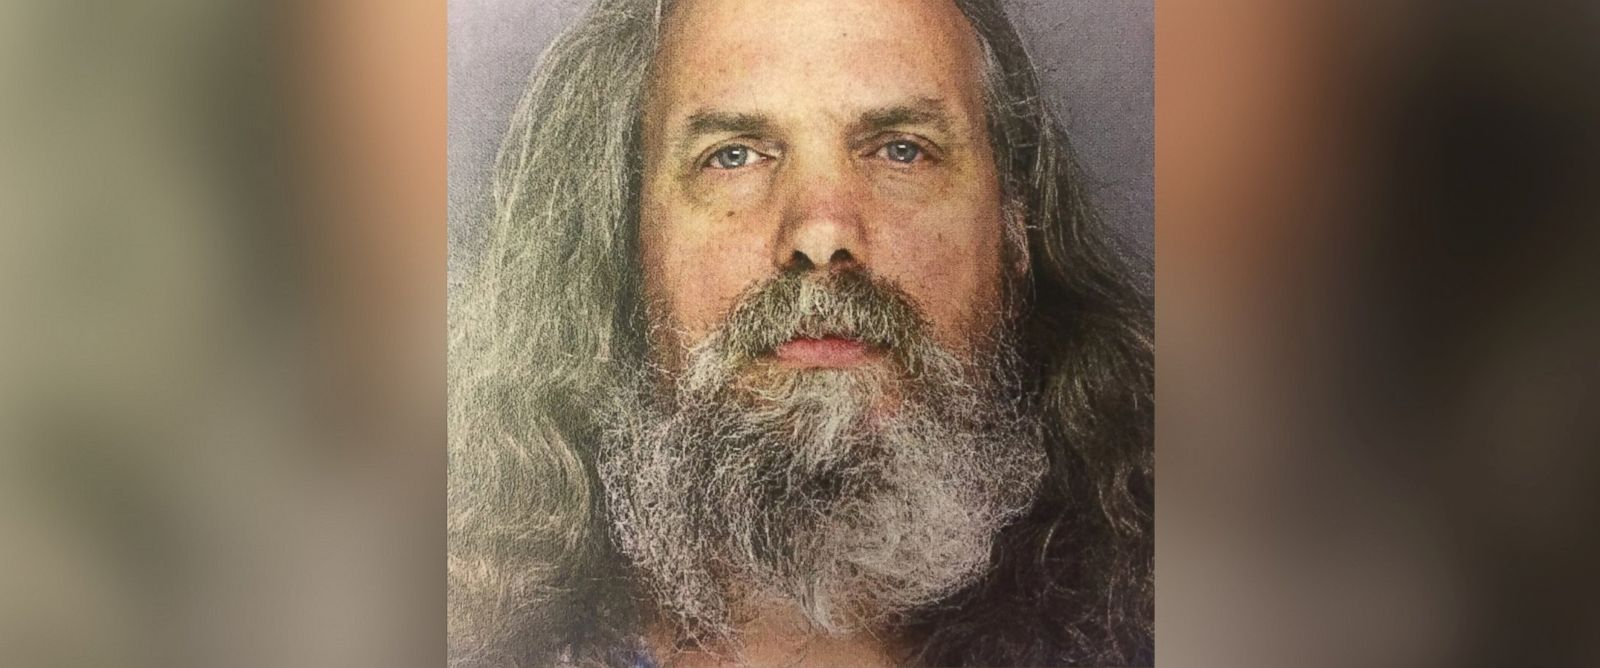 PA Man Arrested Sex With Child..Had 12 Young Girls Living With Him